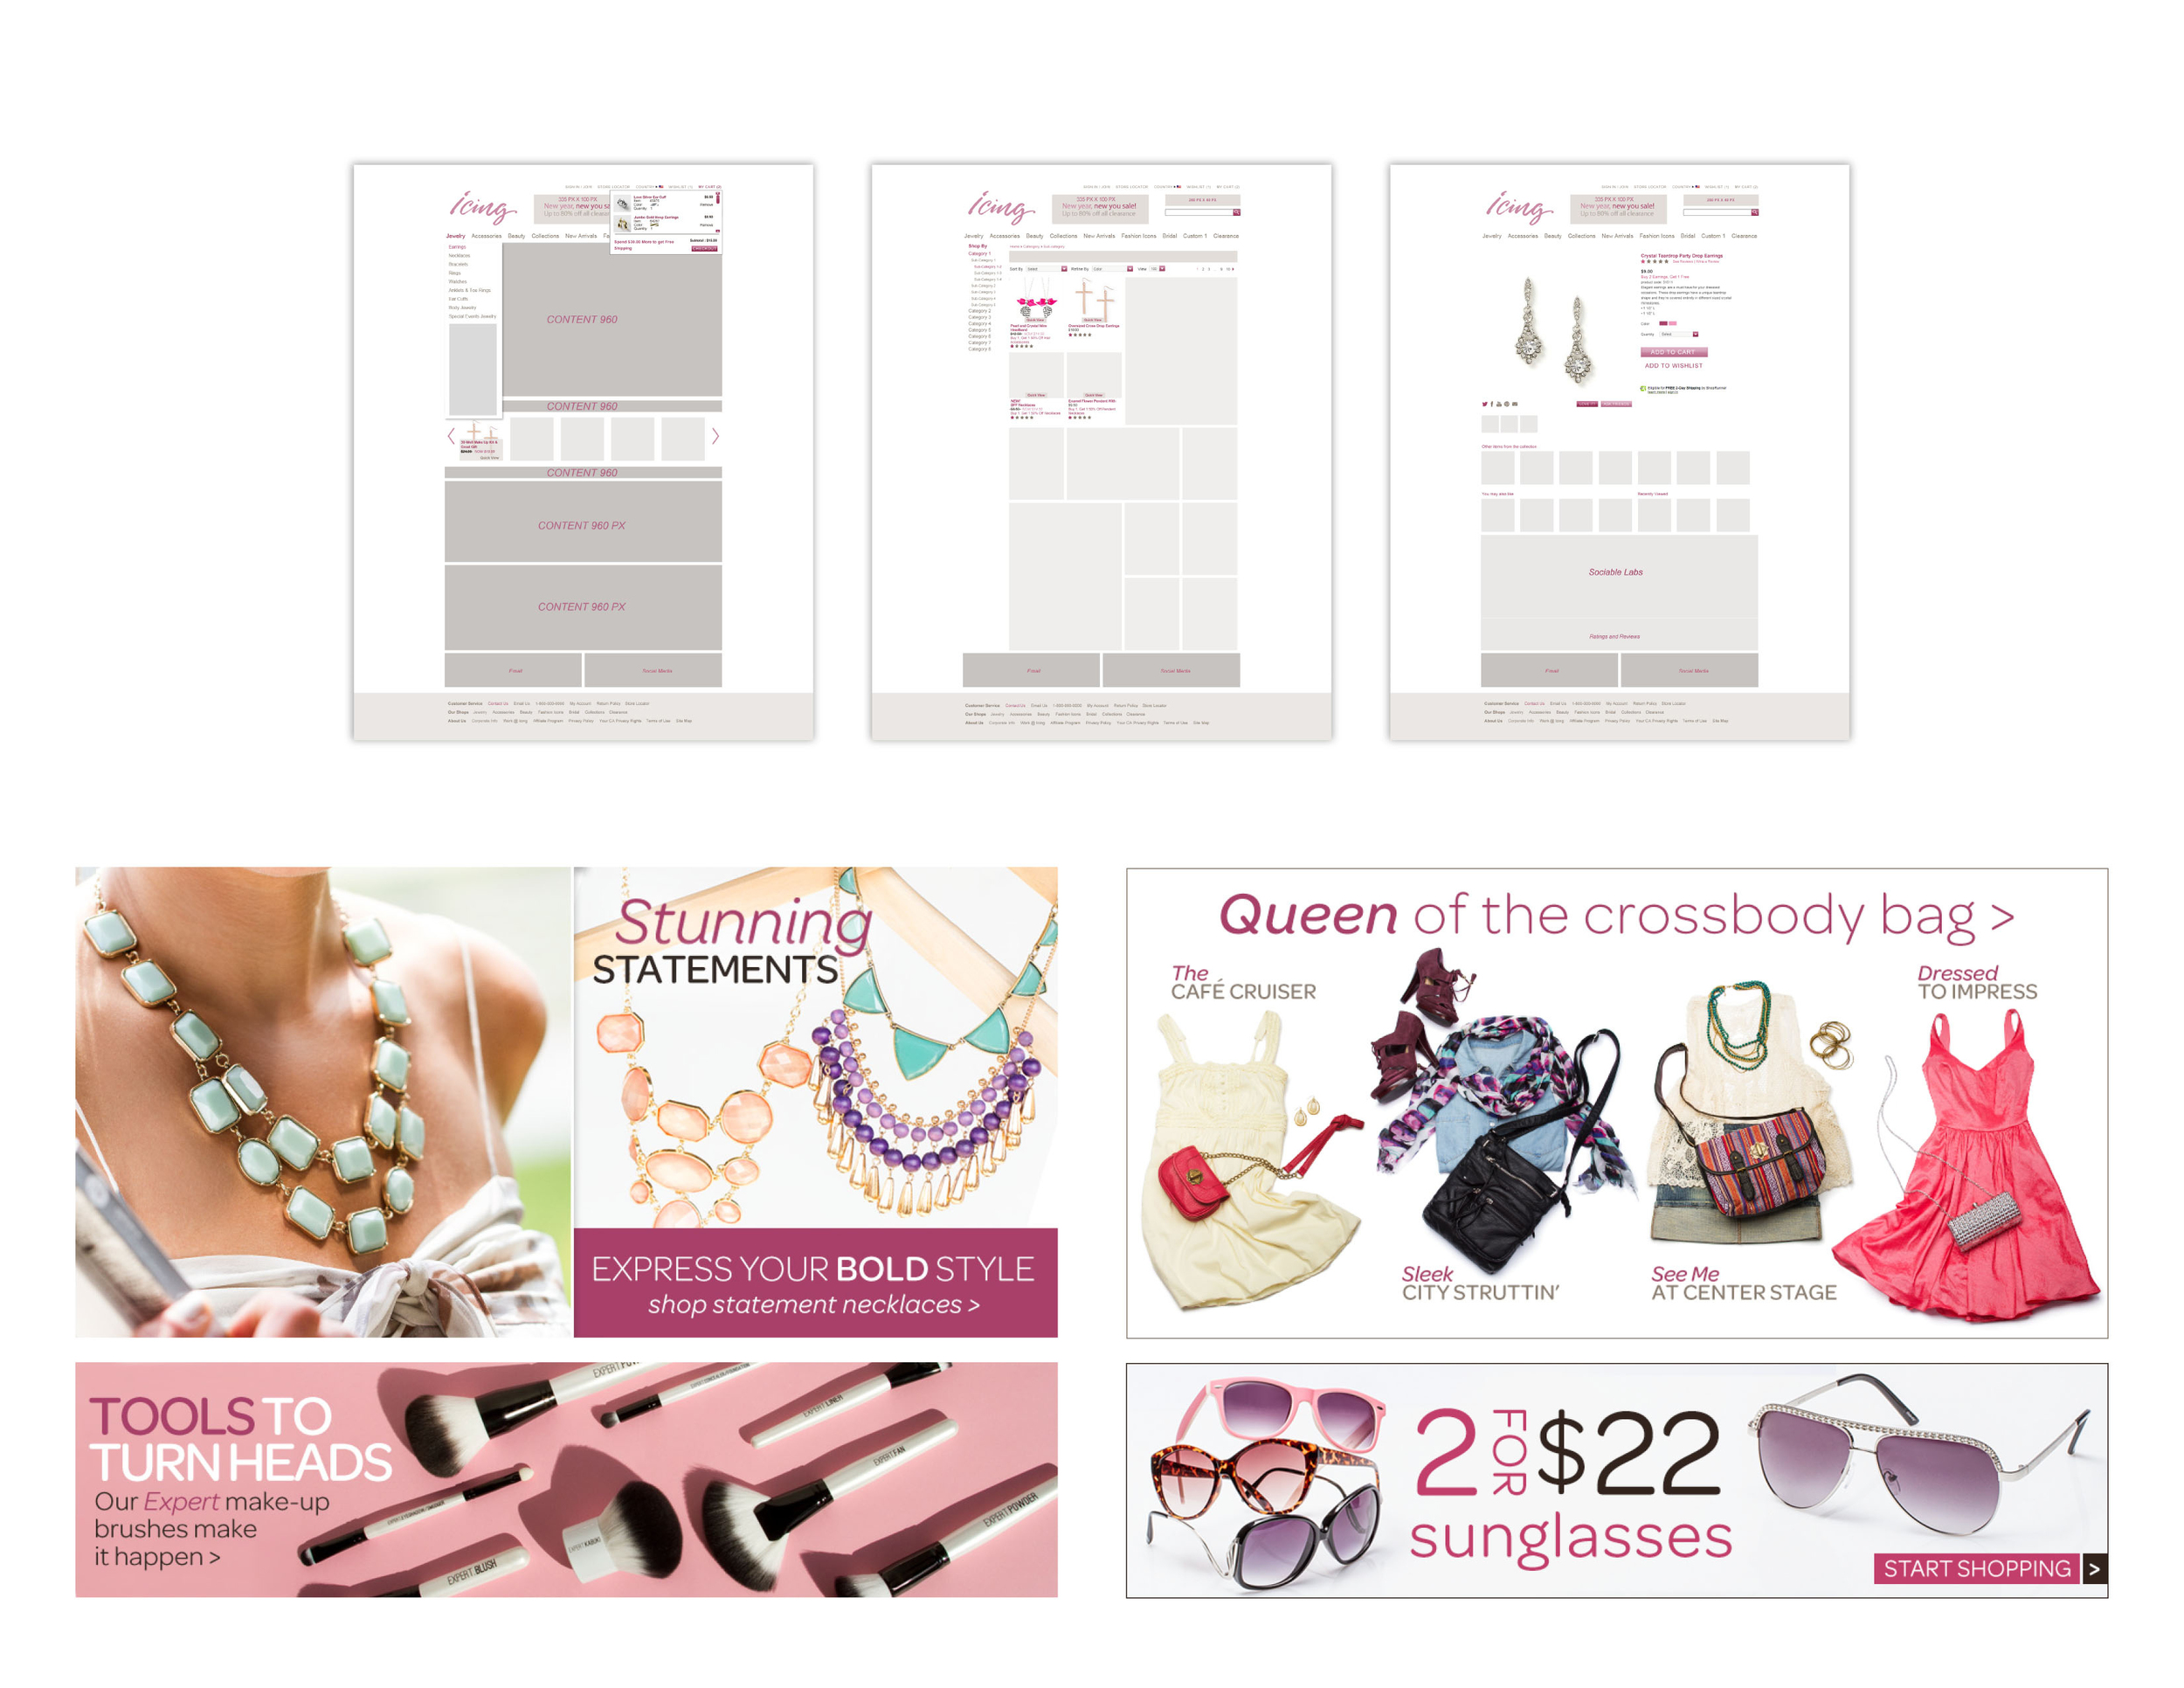 Icing - Website Restructure: Design, Photography